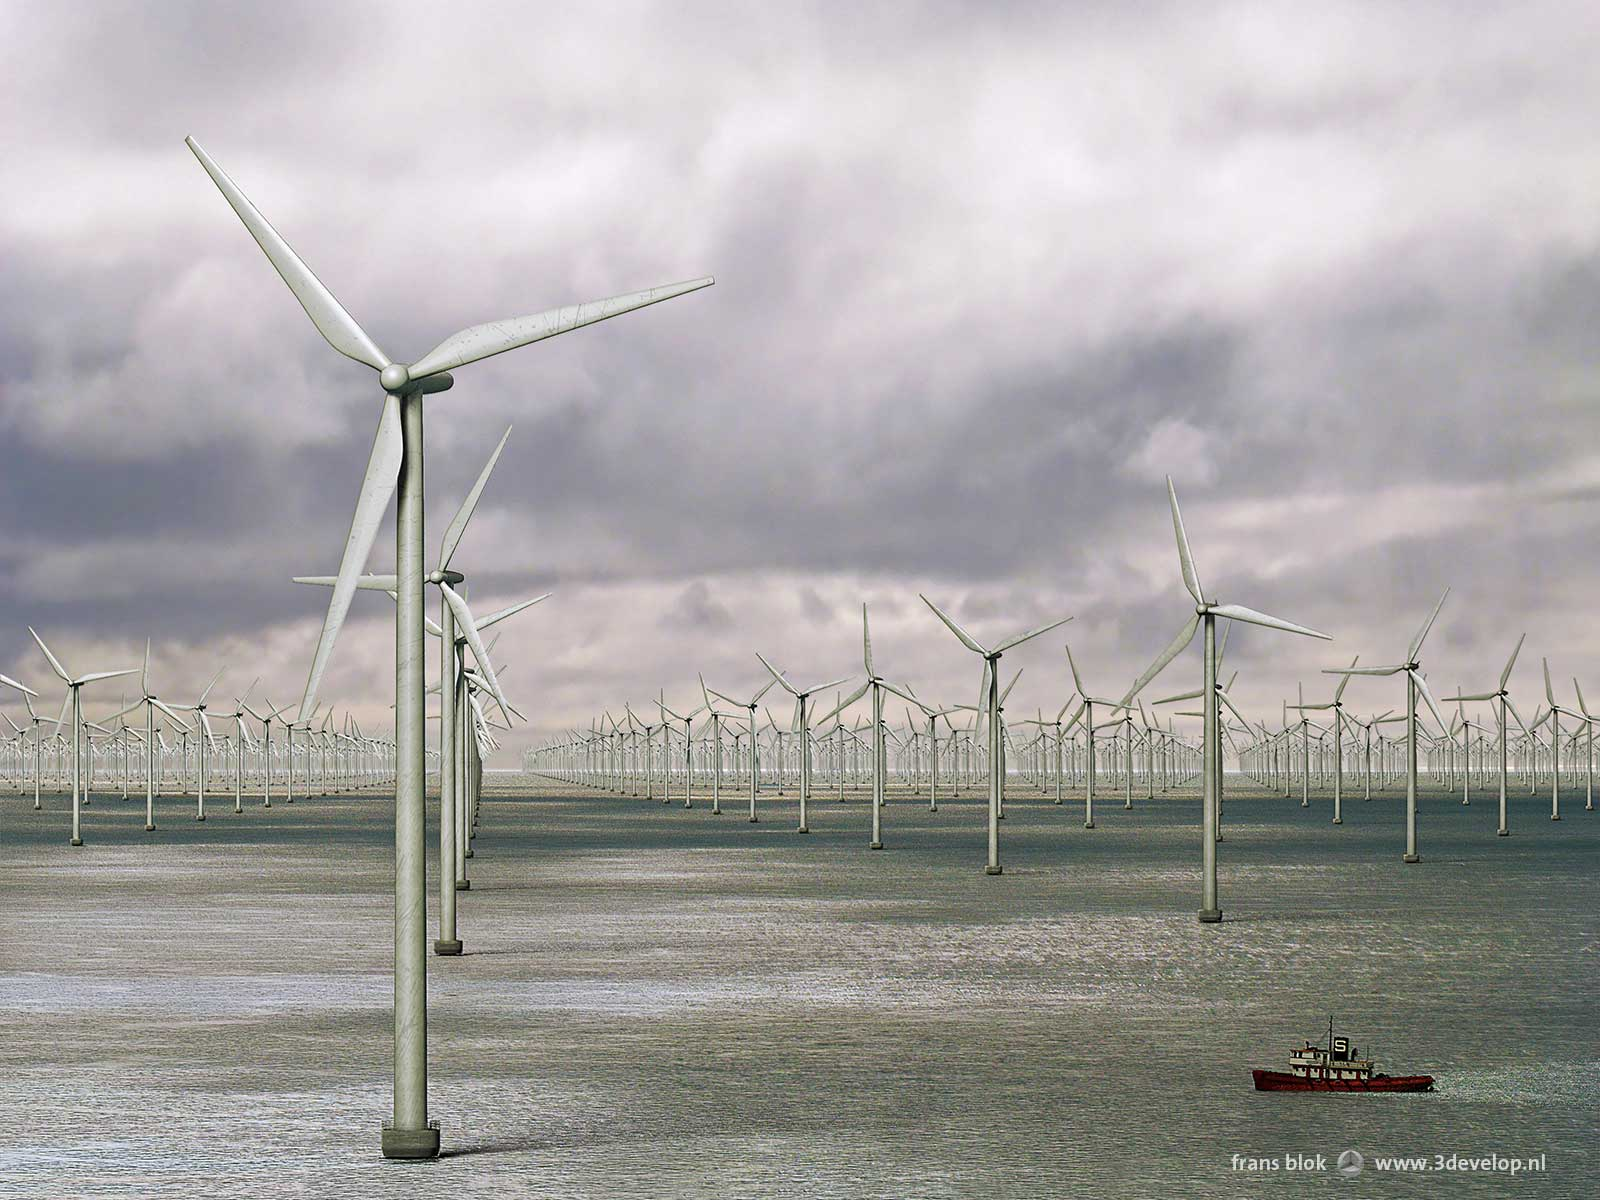 3000 wind turbines on the North Sea